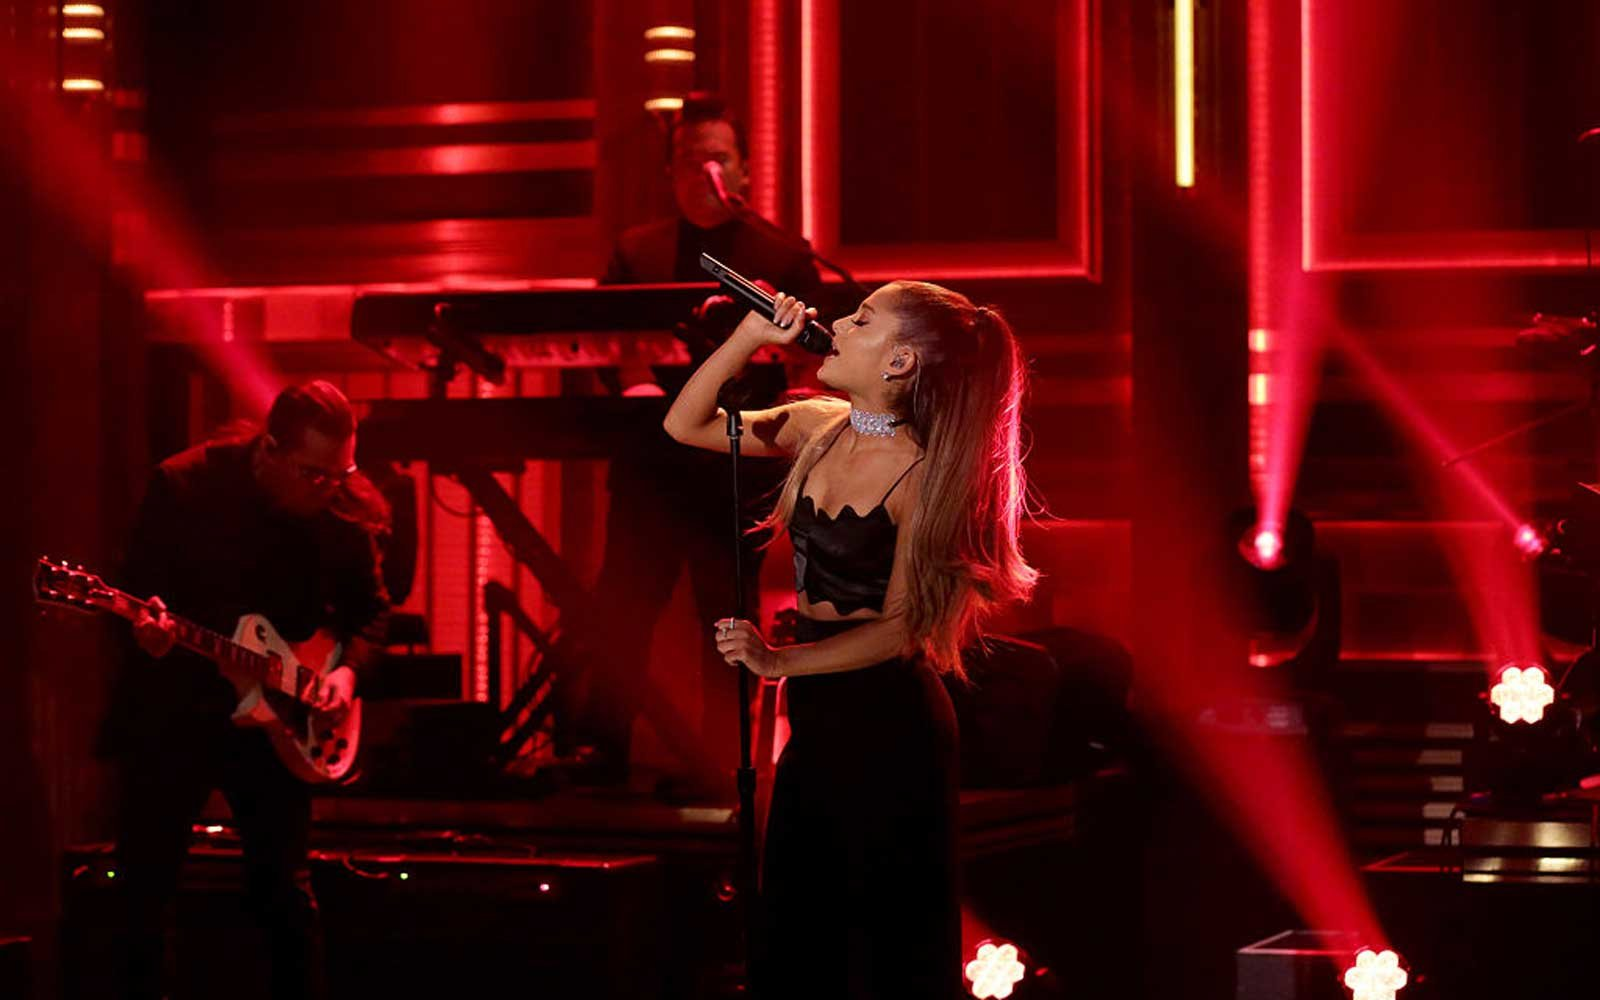 THE TONIGHT SHOW STARRING JIMMY FALLON -- Episode 0457 -- Pictured: Musical guest Ariana Grande performs on April 25, 2016 -- (Photo by: Andrew Lipovsky/NBC/NBCU Photo Bank via Getty Images)